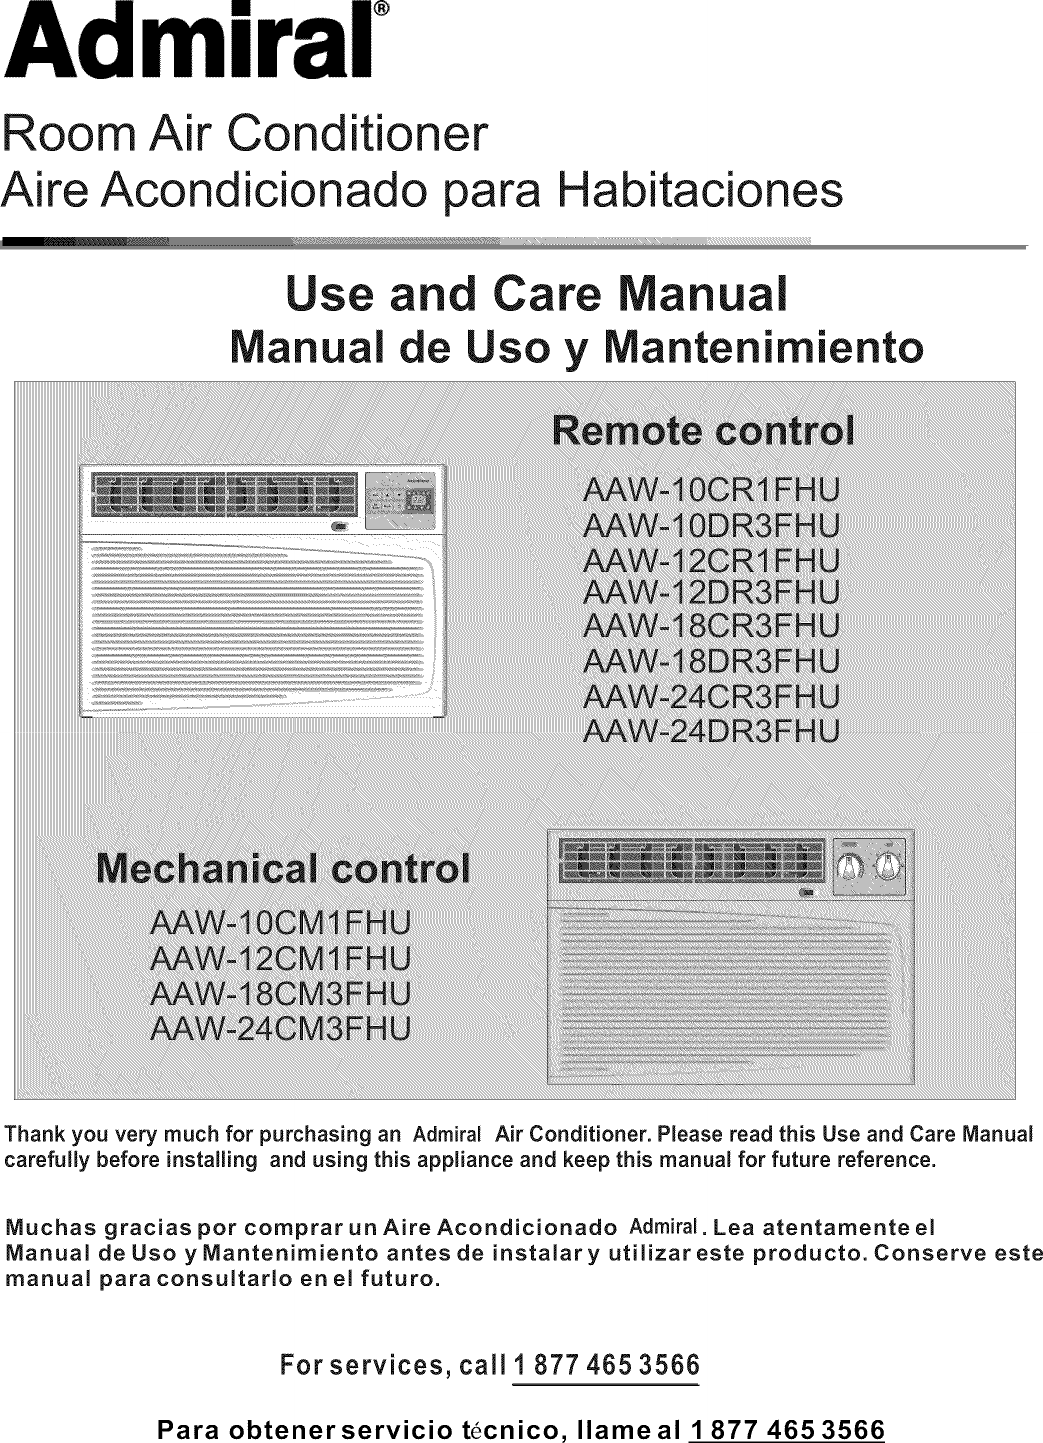 admiral kelon aaw 10cr1fhu user manual air conditioner manuals and rh usermanual wiki Admiral Air Conditioner Controls Admiral Portable Air Conditioner